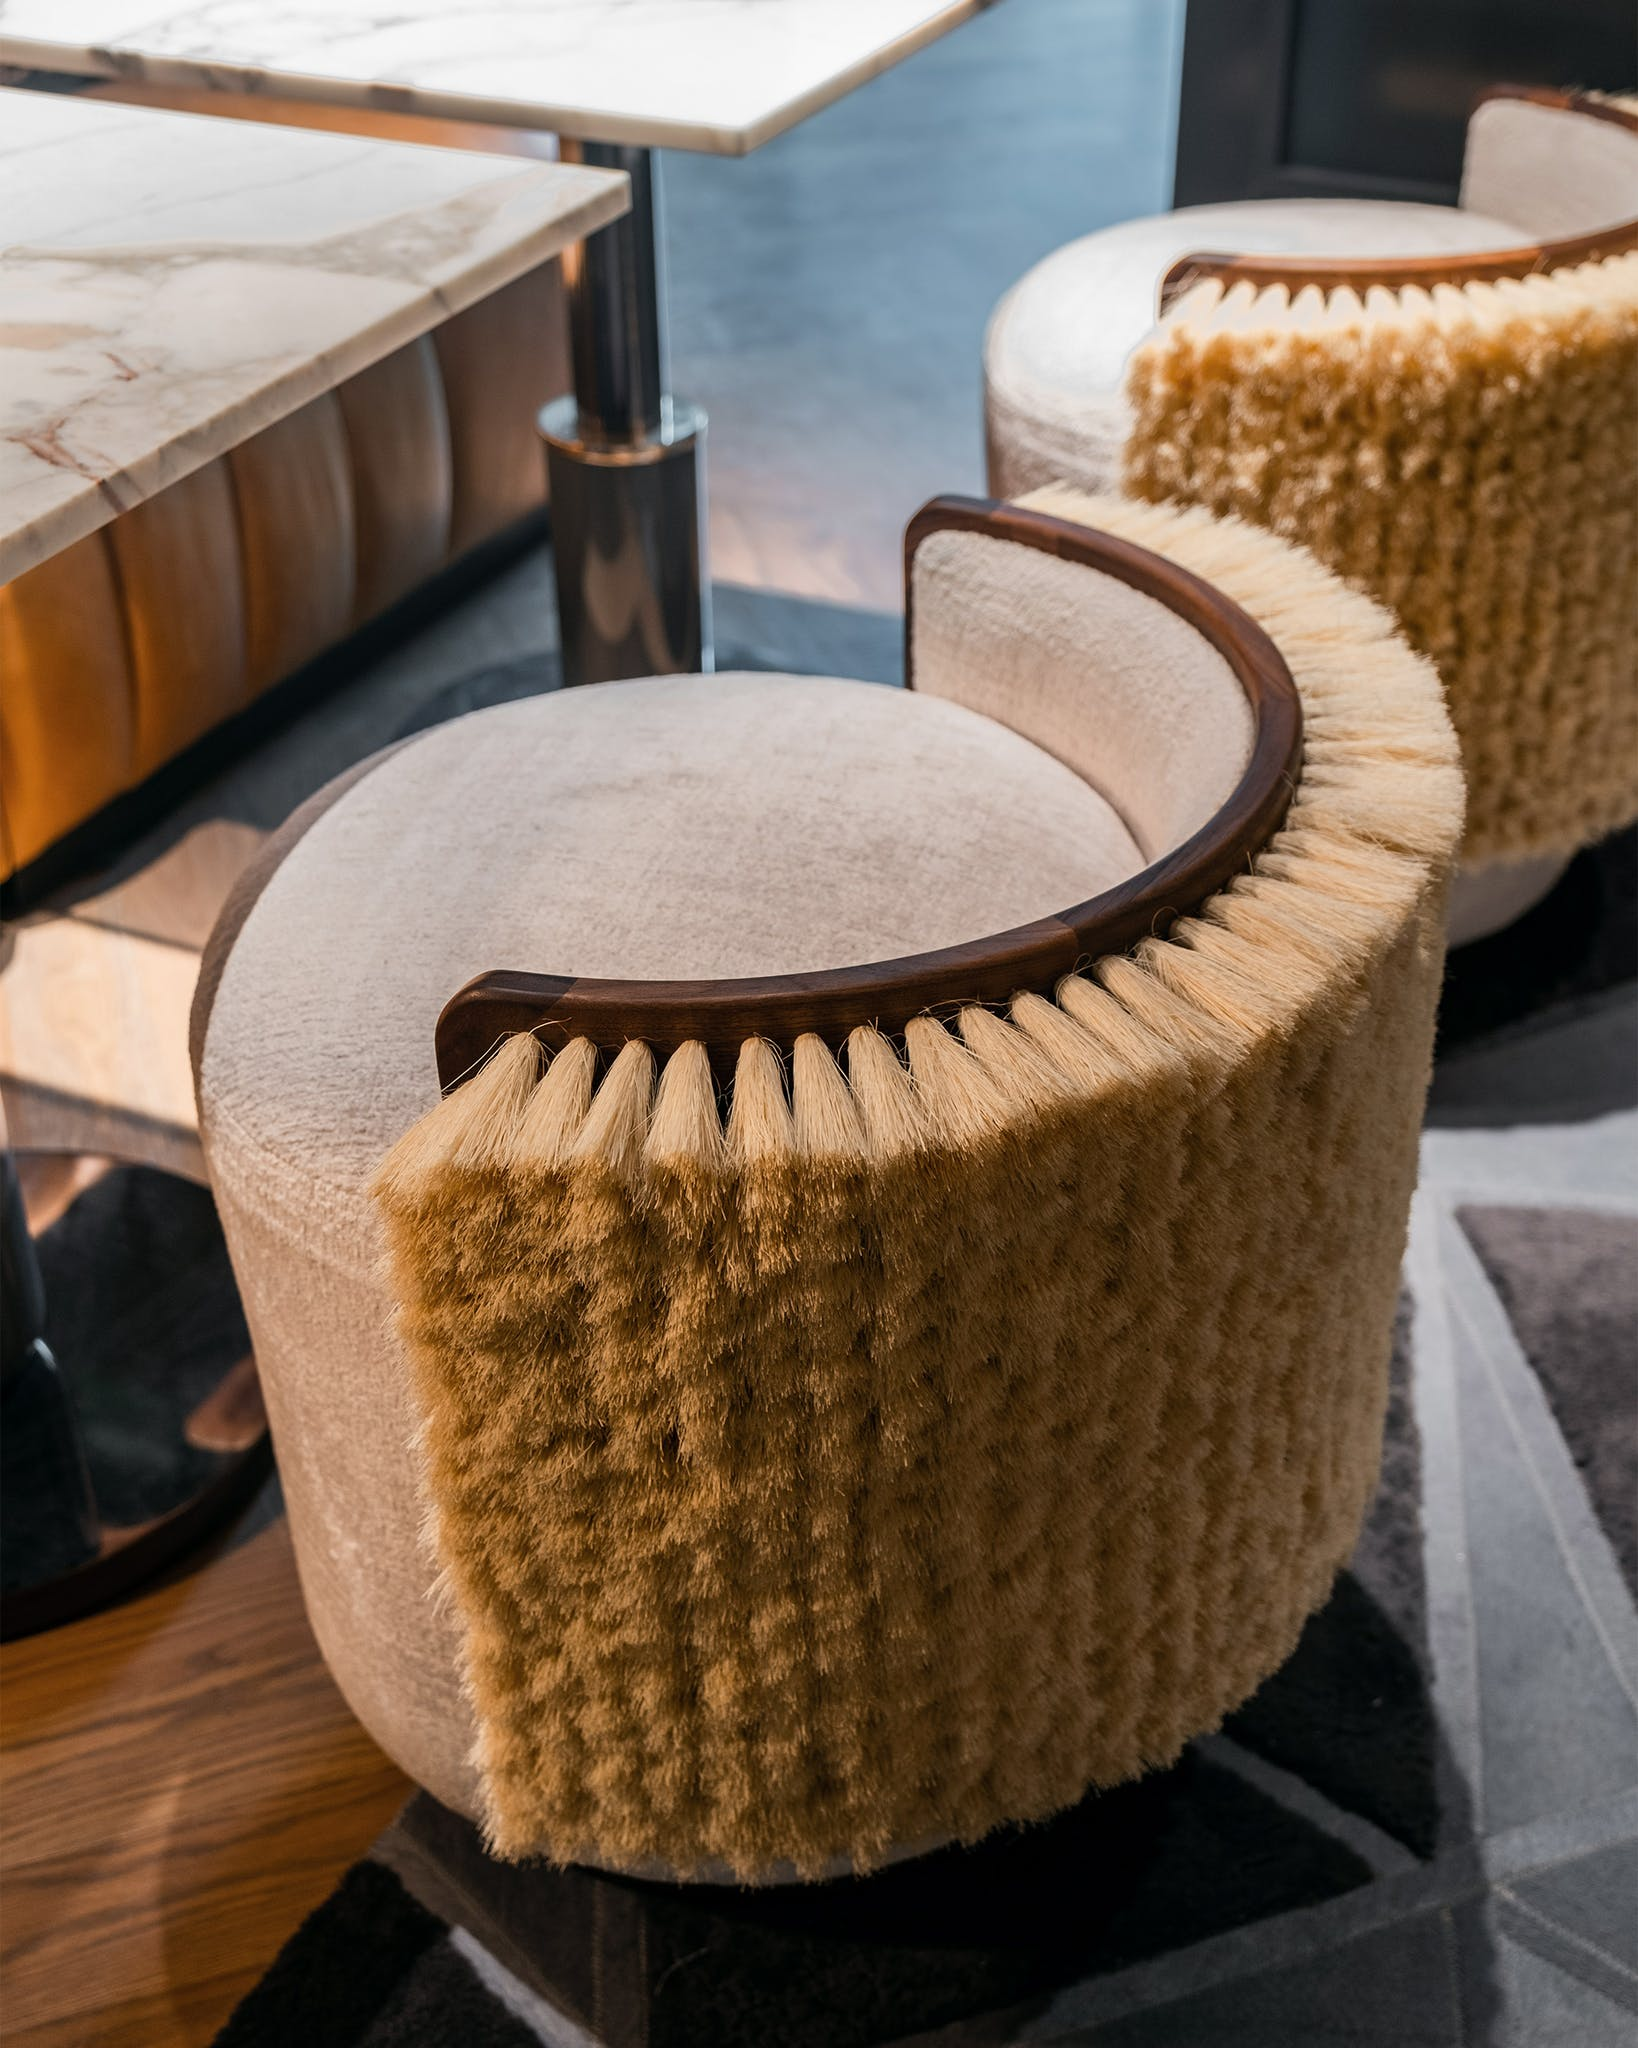 Most of the furnishings are as delightful as they are practical, with perhaps the exception of these whimsical Ad Hoc-designed stools: if you lean too far back, you might topple over.